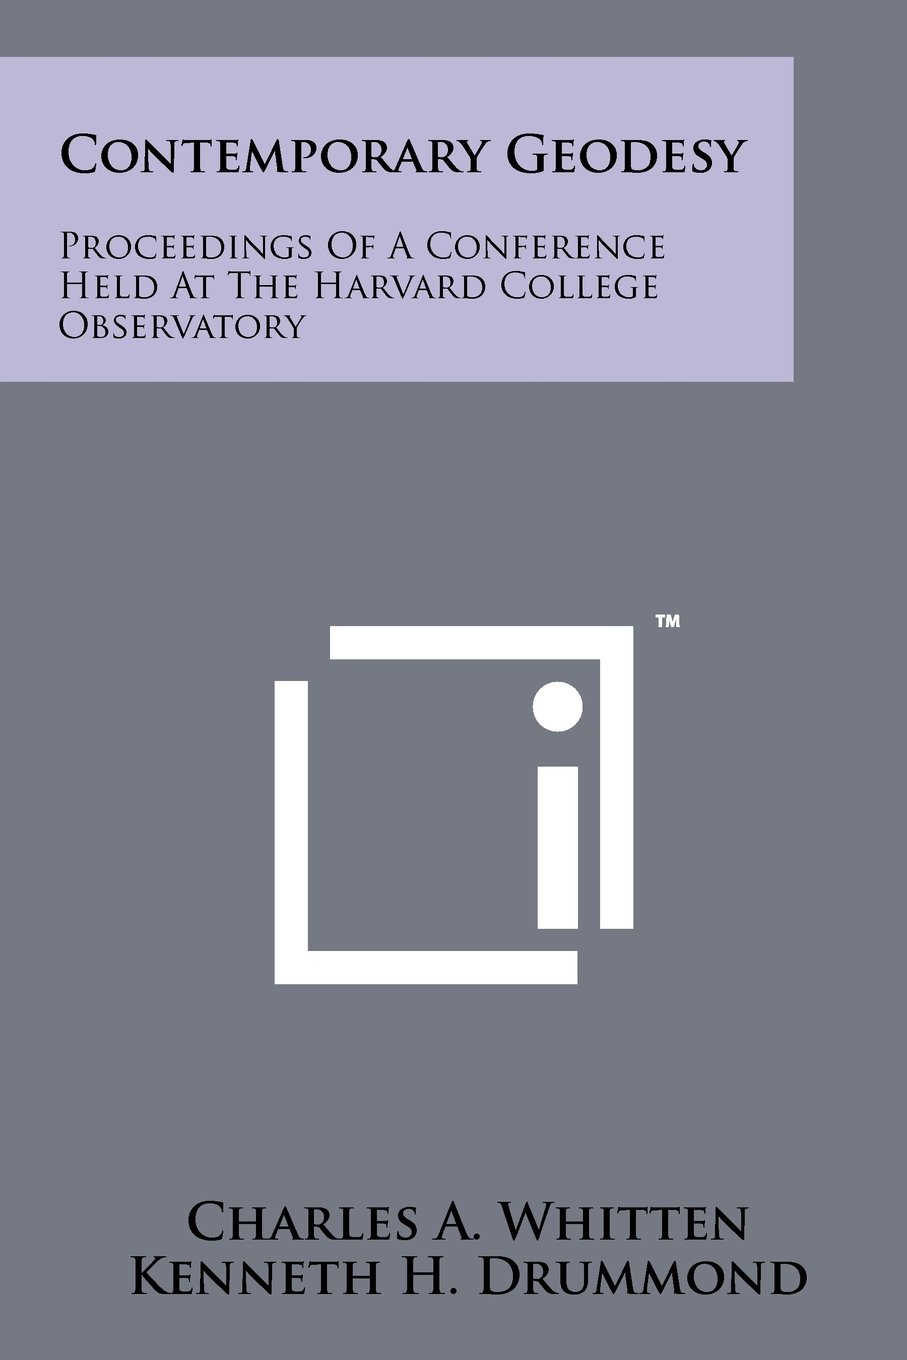 Download Contemporary Geodesy: Proceedings Of A Conference Held At The Harvard College Observatory pdf